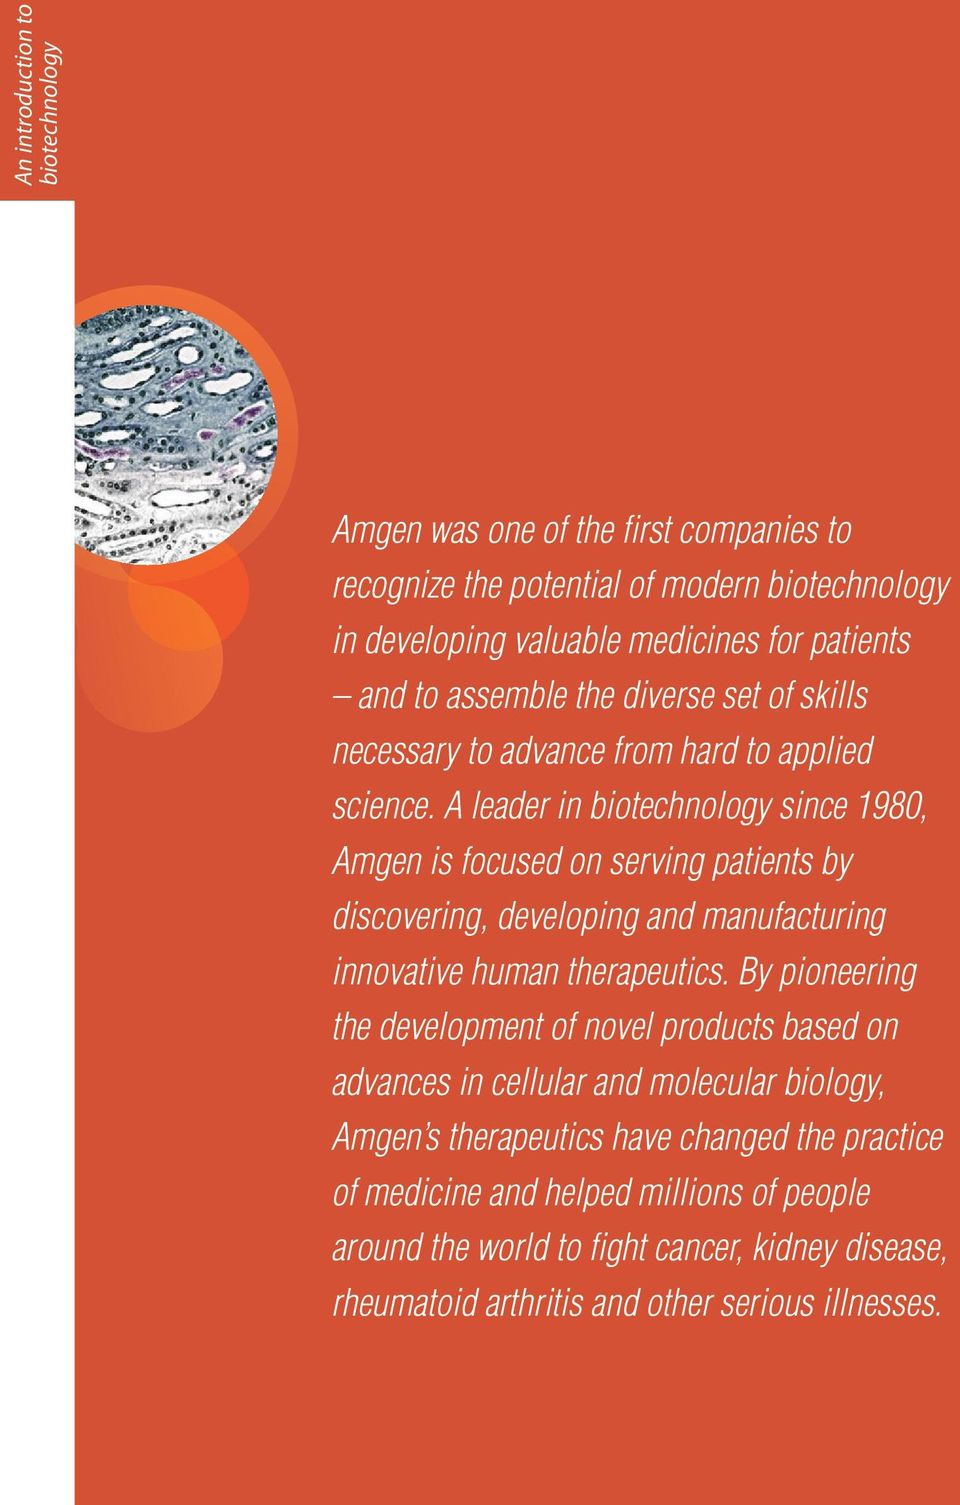 A leader in biotechnology since 1980, Amgen is focused on serving patients by discovering, developing and manufacturing innovative human therapeutics.